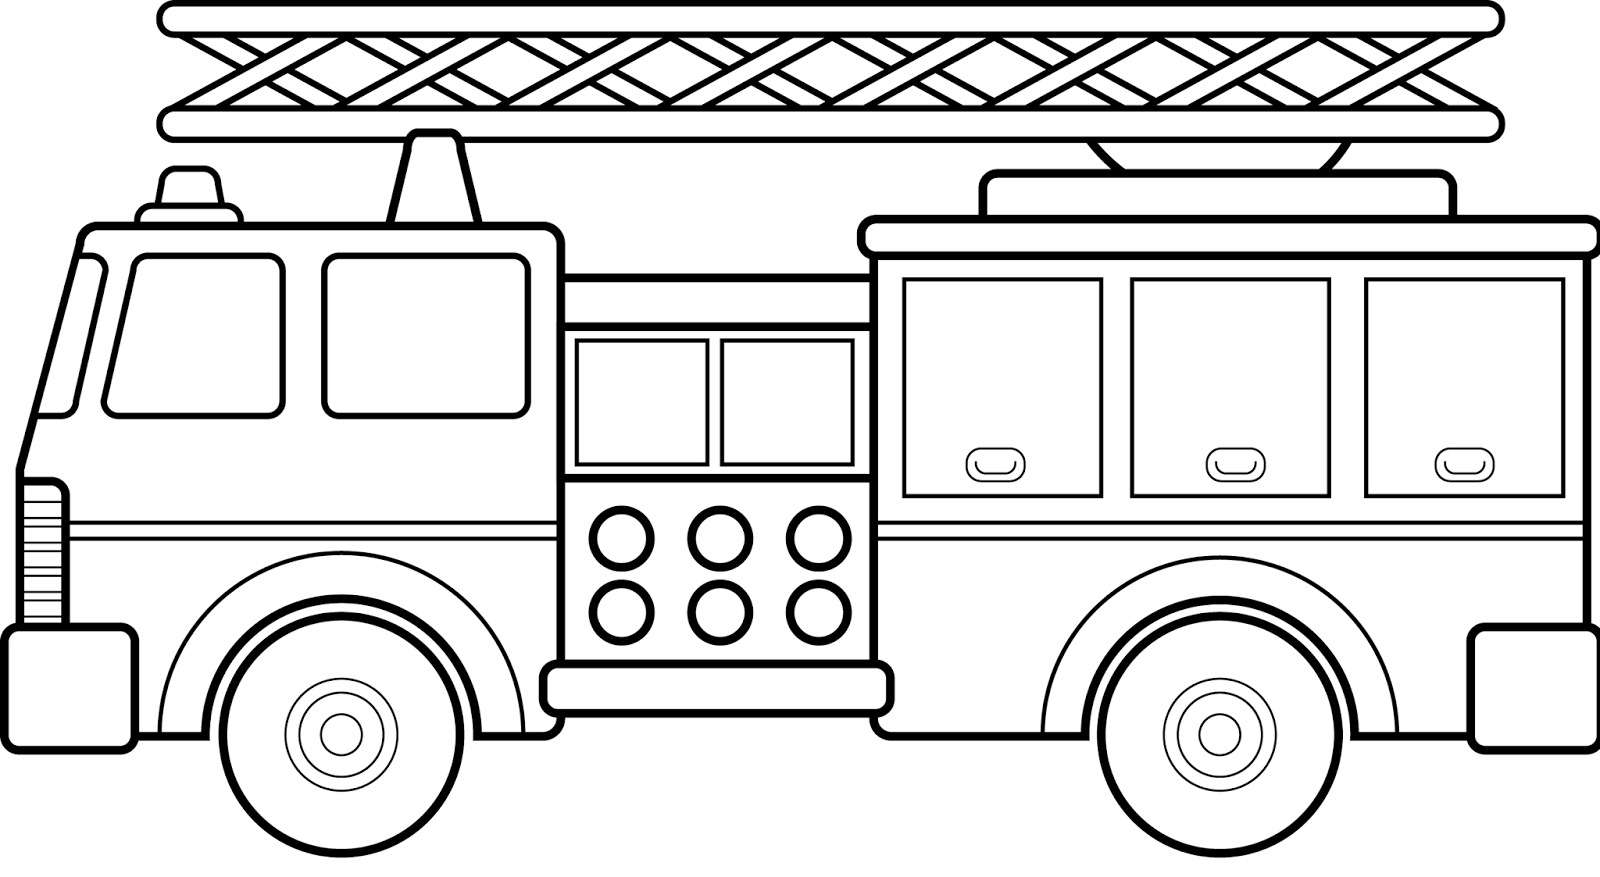 Coloring pictures of cars truck tractors - Vehicles Coloring Pages